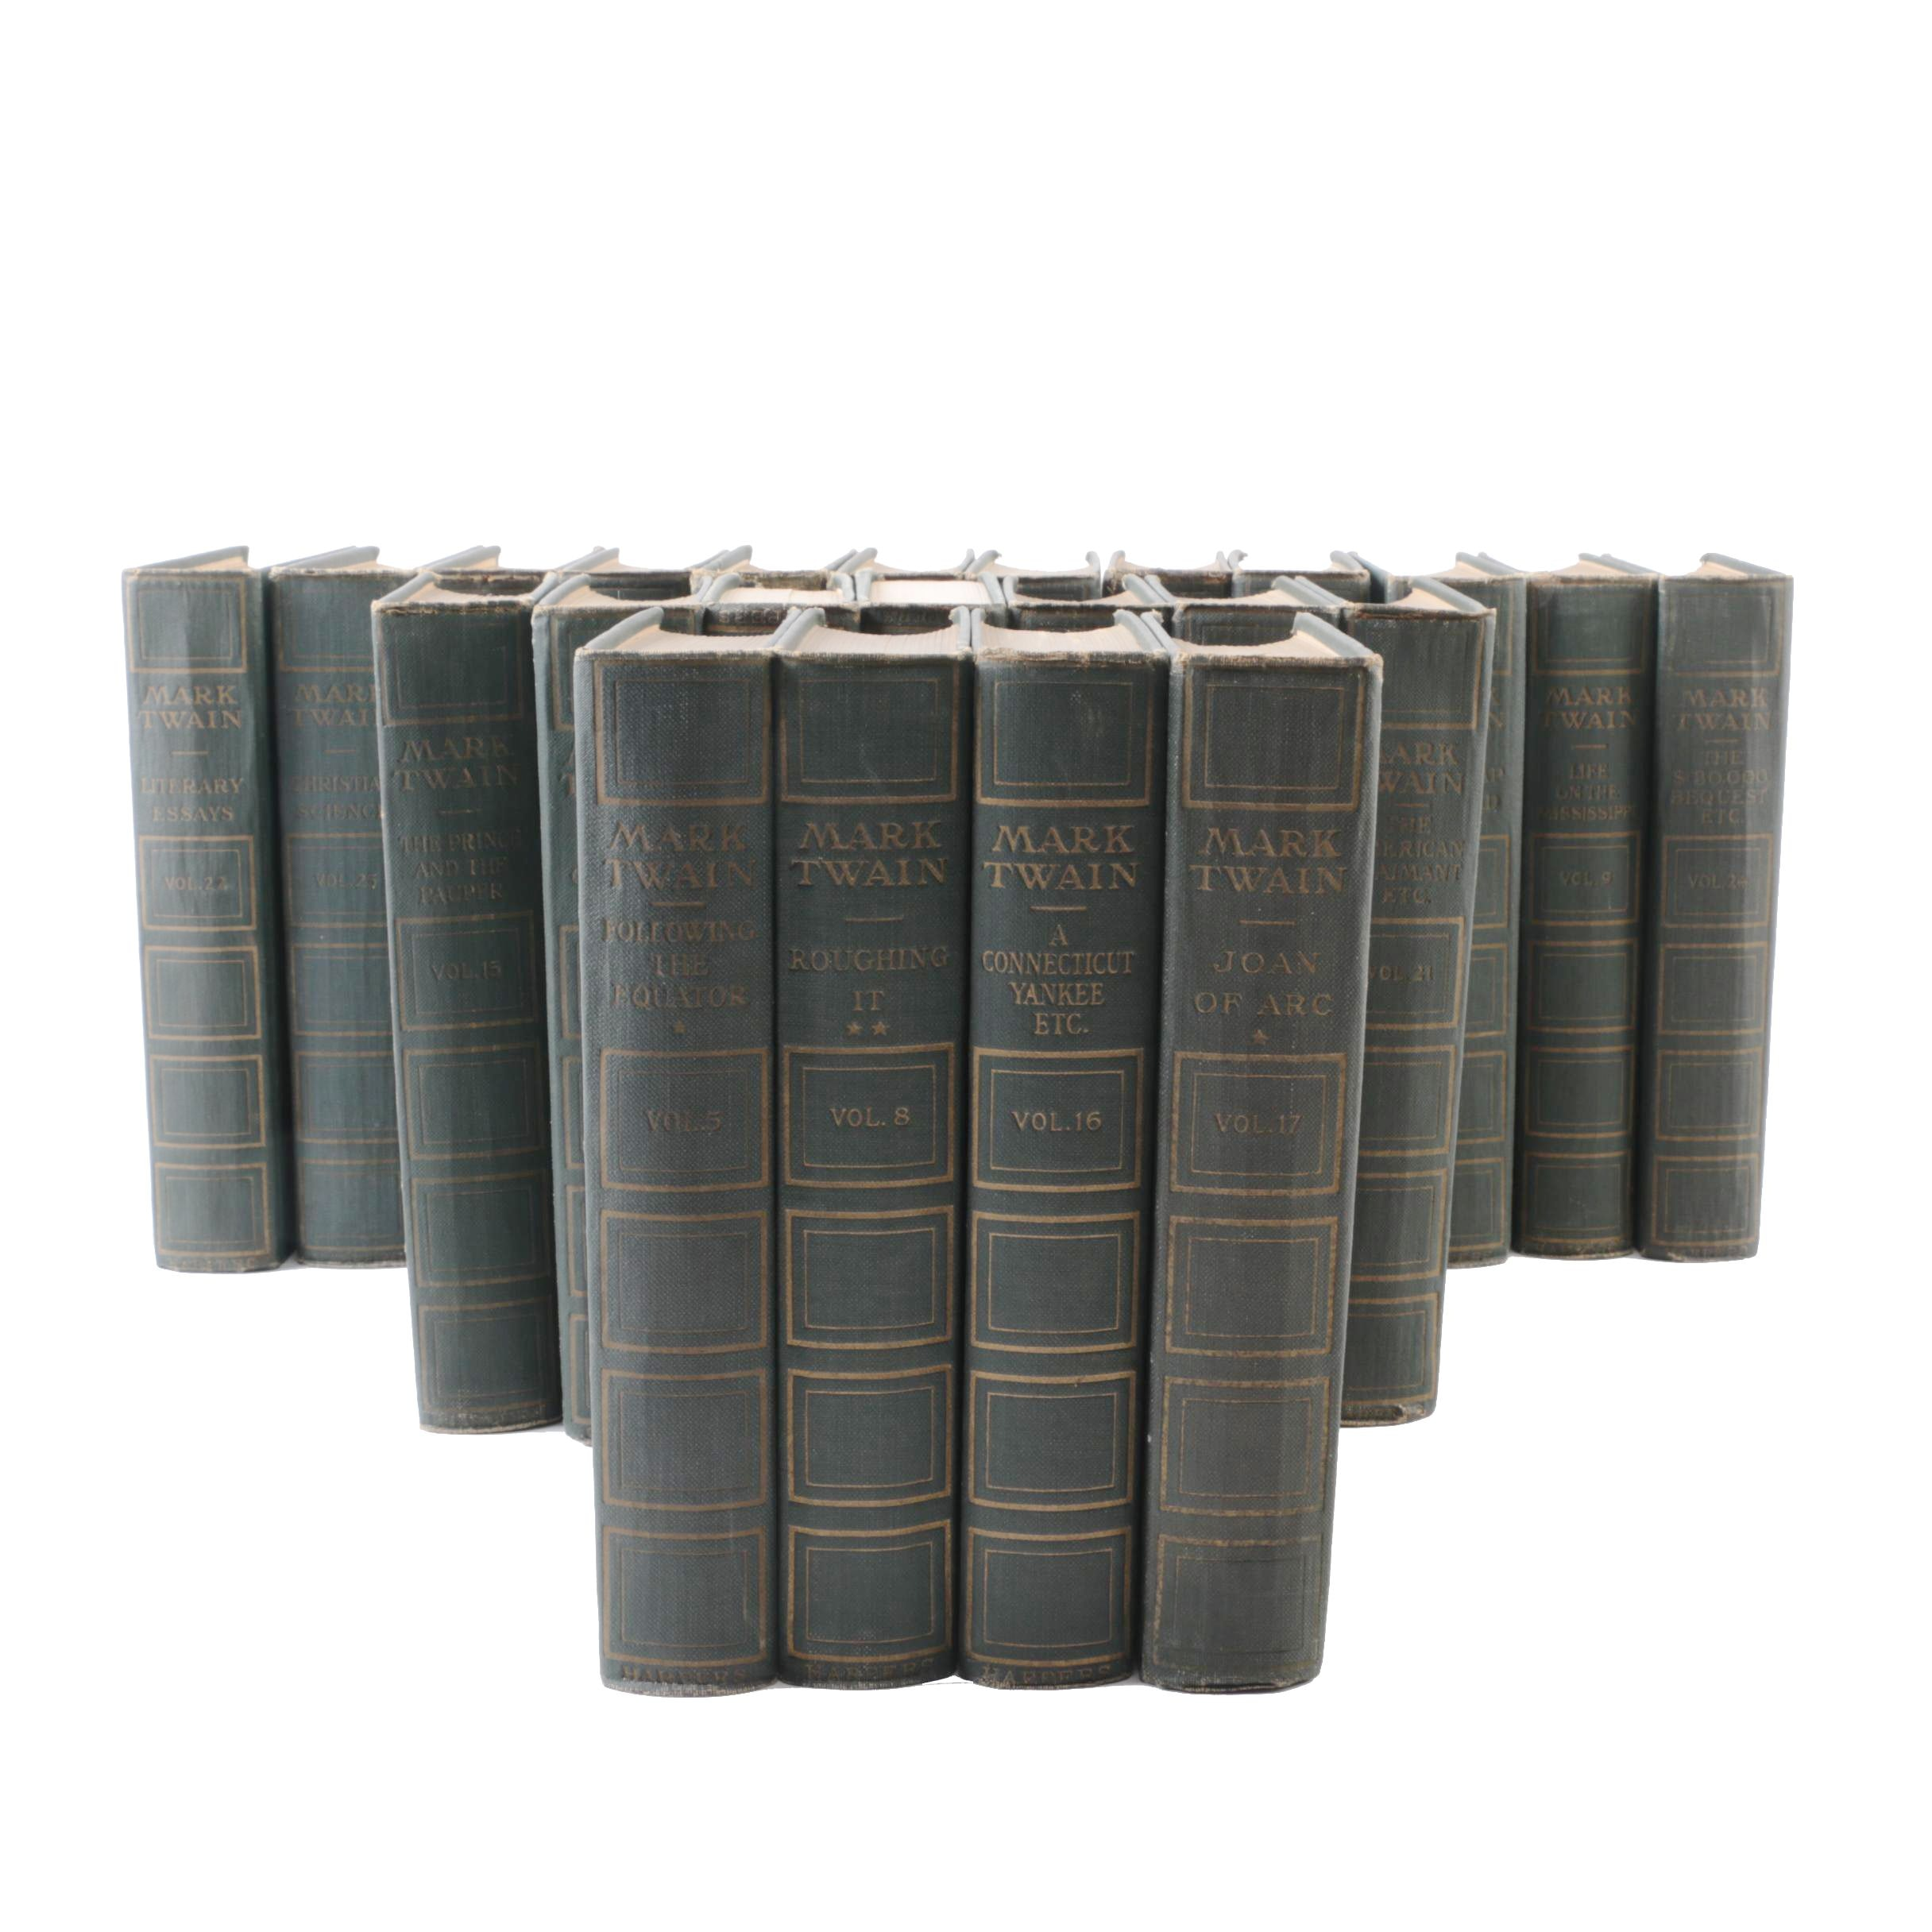 1910s Multi-Volume Set of Works by Mark Twain